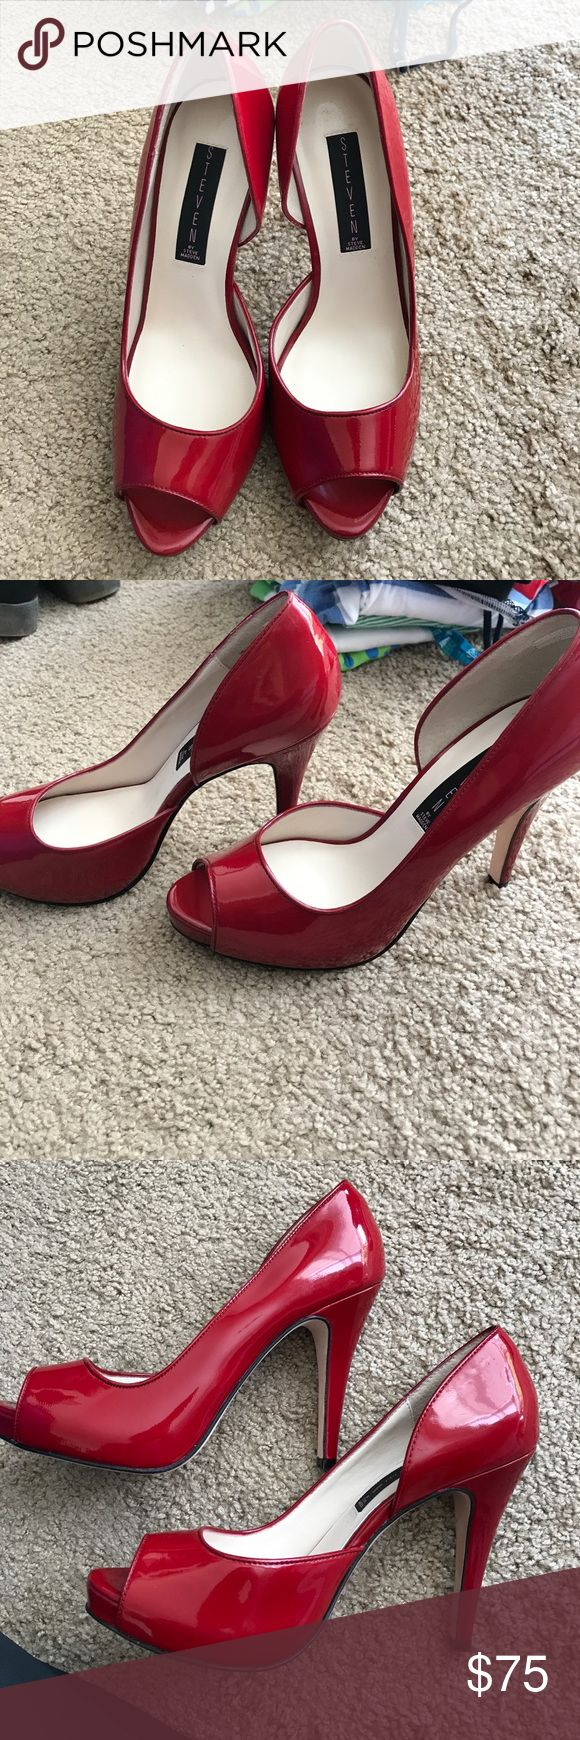 Steve Madden patent leather heels Selling for my mom. NWOT and never worn Steve Madden red patent leather pumps. She takes great care of her shoes, so no visible scuff marks that I can see. Bottom of shoe has mark, but it's from trying on in the store . Bottom of shoe is genuine leather. Heel is around 4in (give or take). Steve Madden Shoes Heels